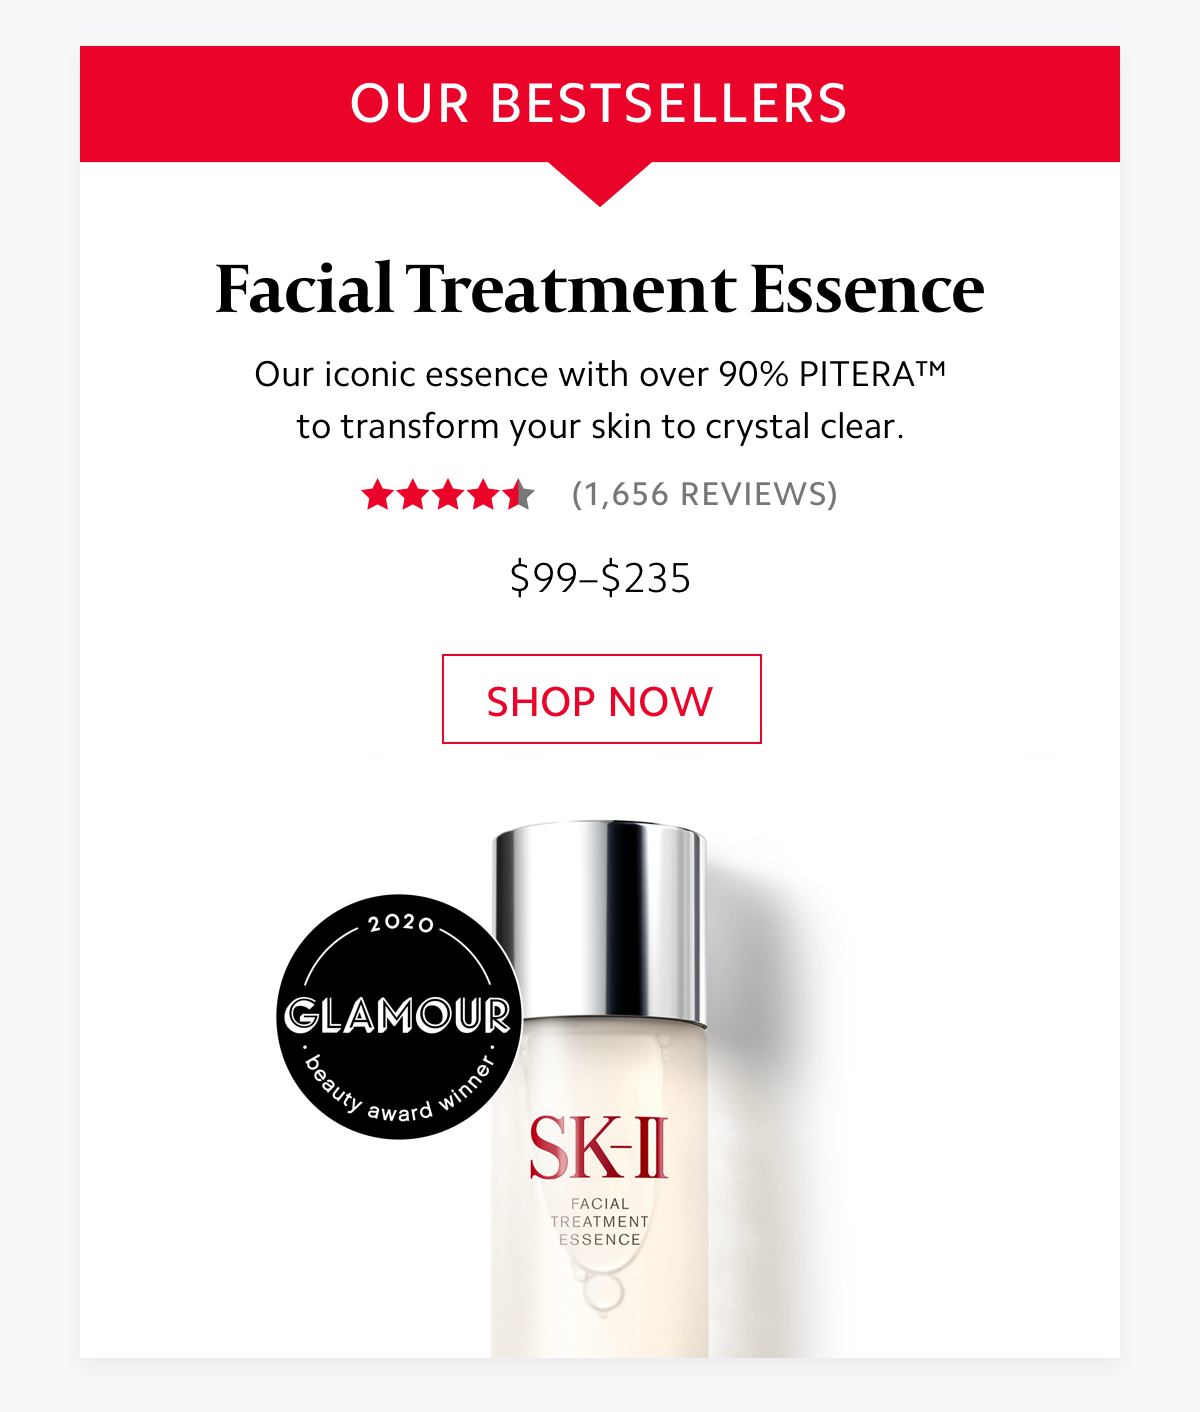 Facial Treatment Essence Our iconic essence with over 90% PITERA™. SHOP NOW